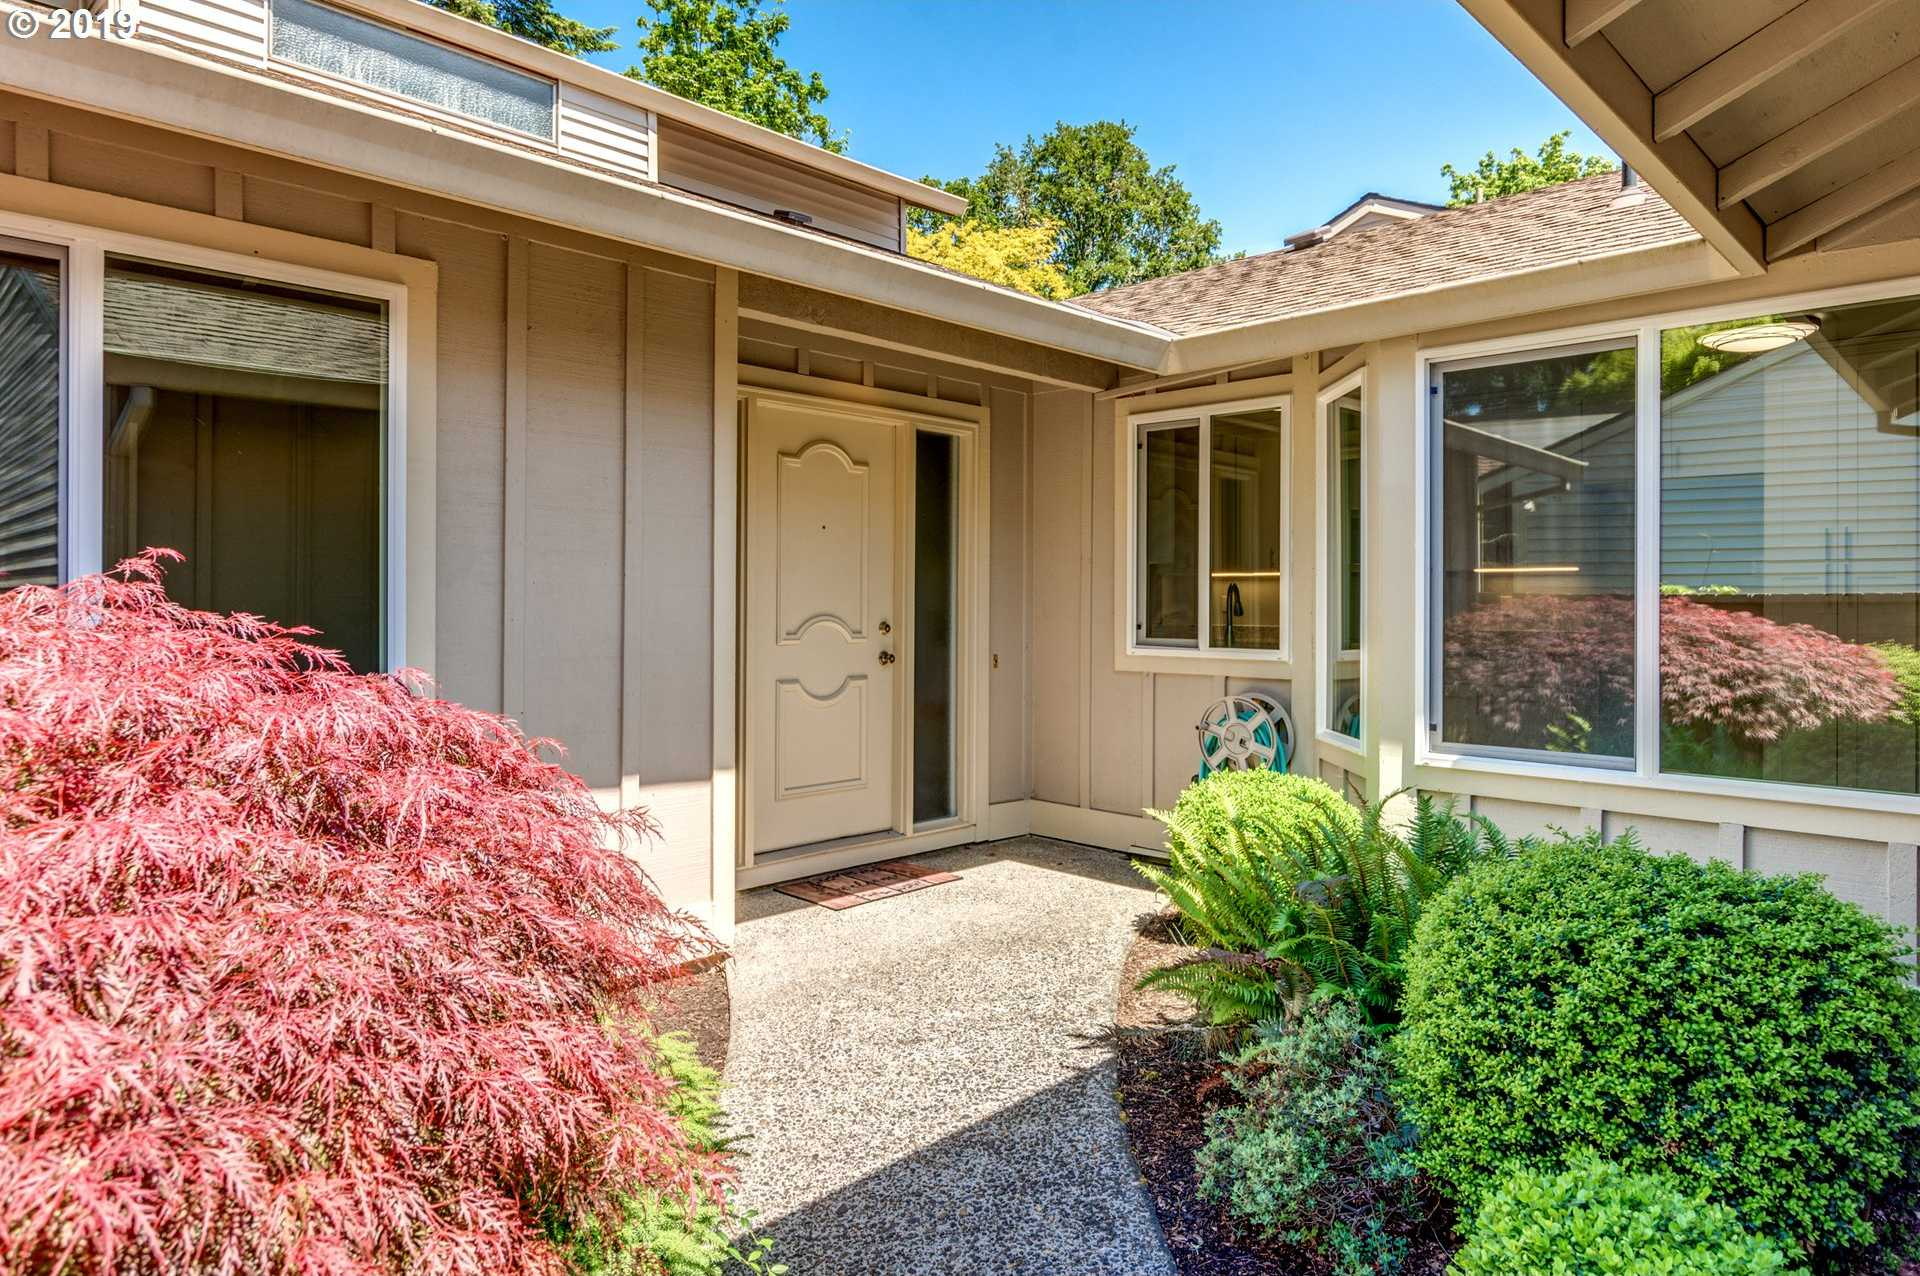 $498,500 - 2Br/2Ba -  for Sale in Summerfield, Tigard